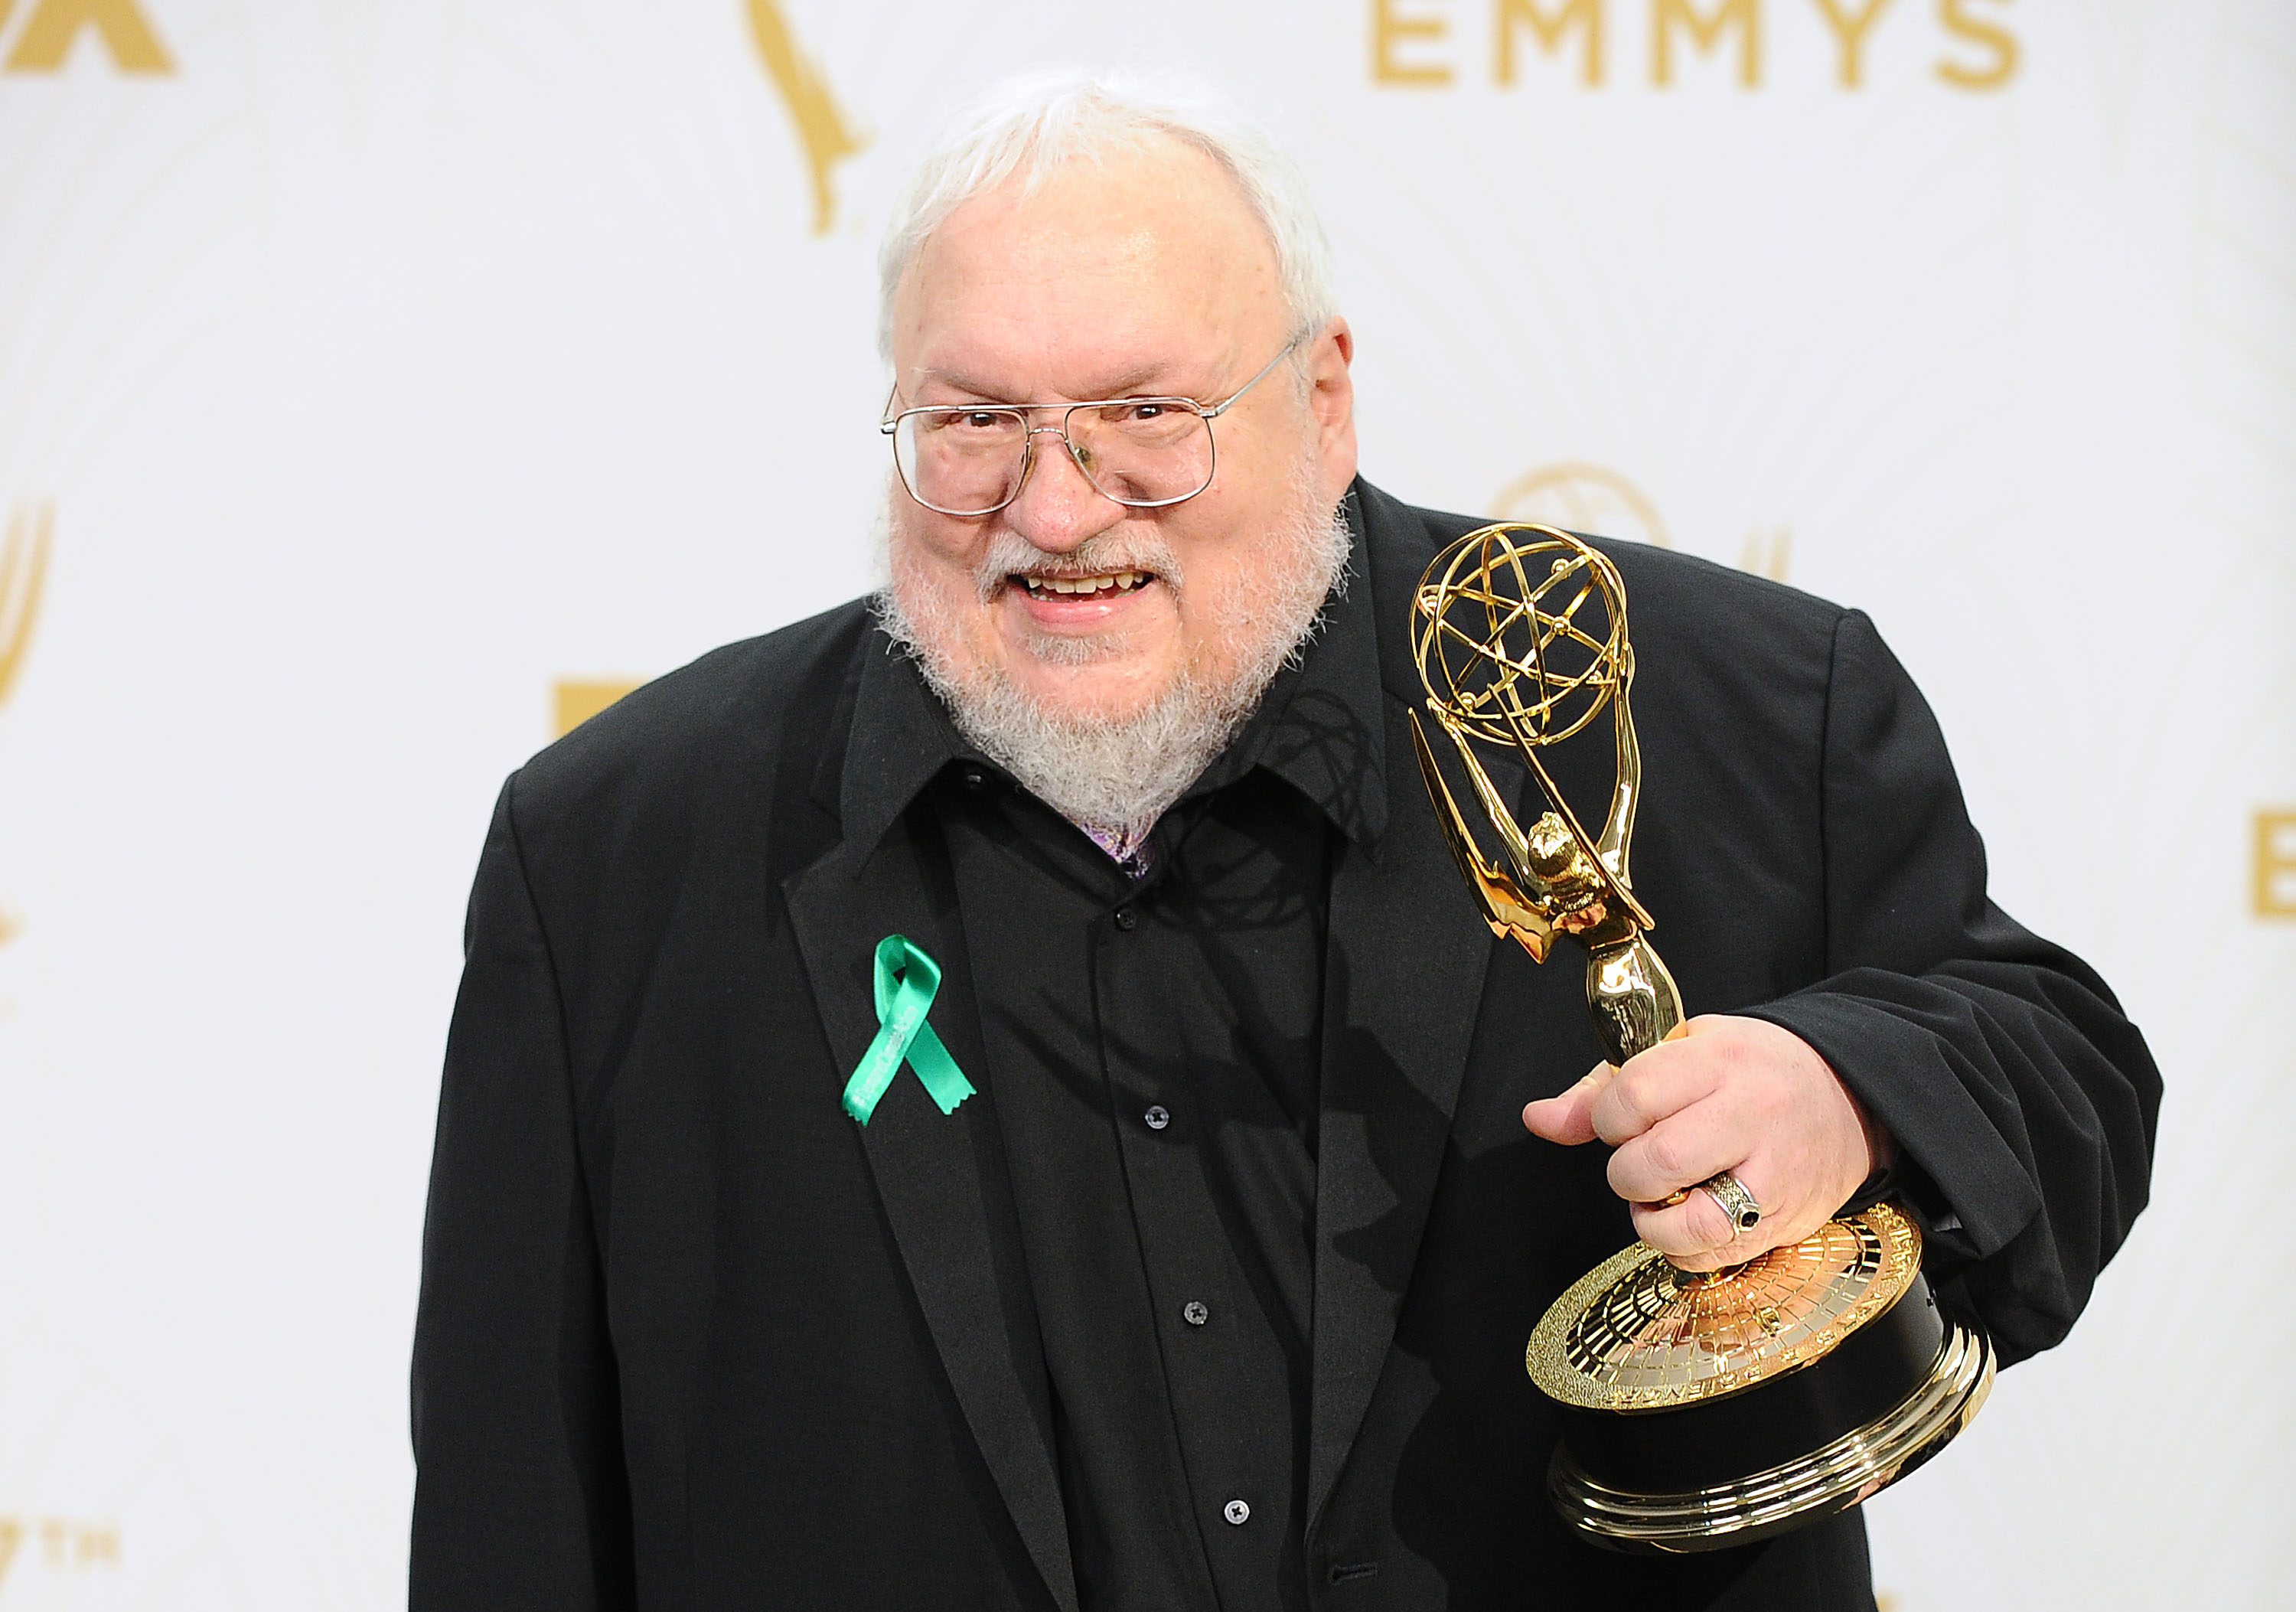 George R.R. Martin poses in the press room at the 67th annual Primetime Emmy Awards at Microsoft Theater in Los Angeles on Sept. 20, 2015.